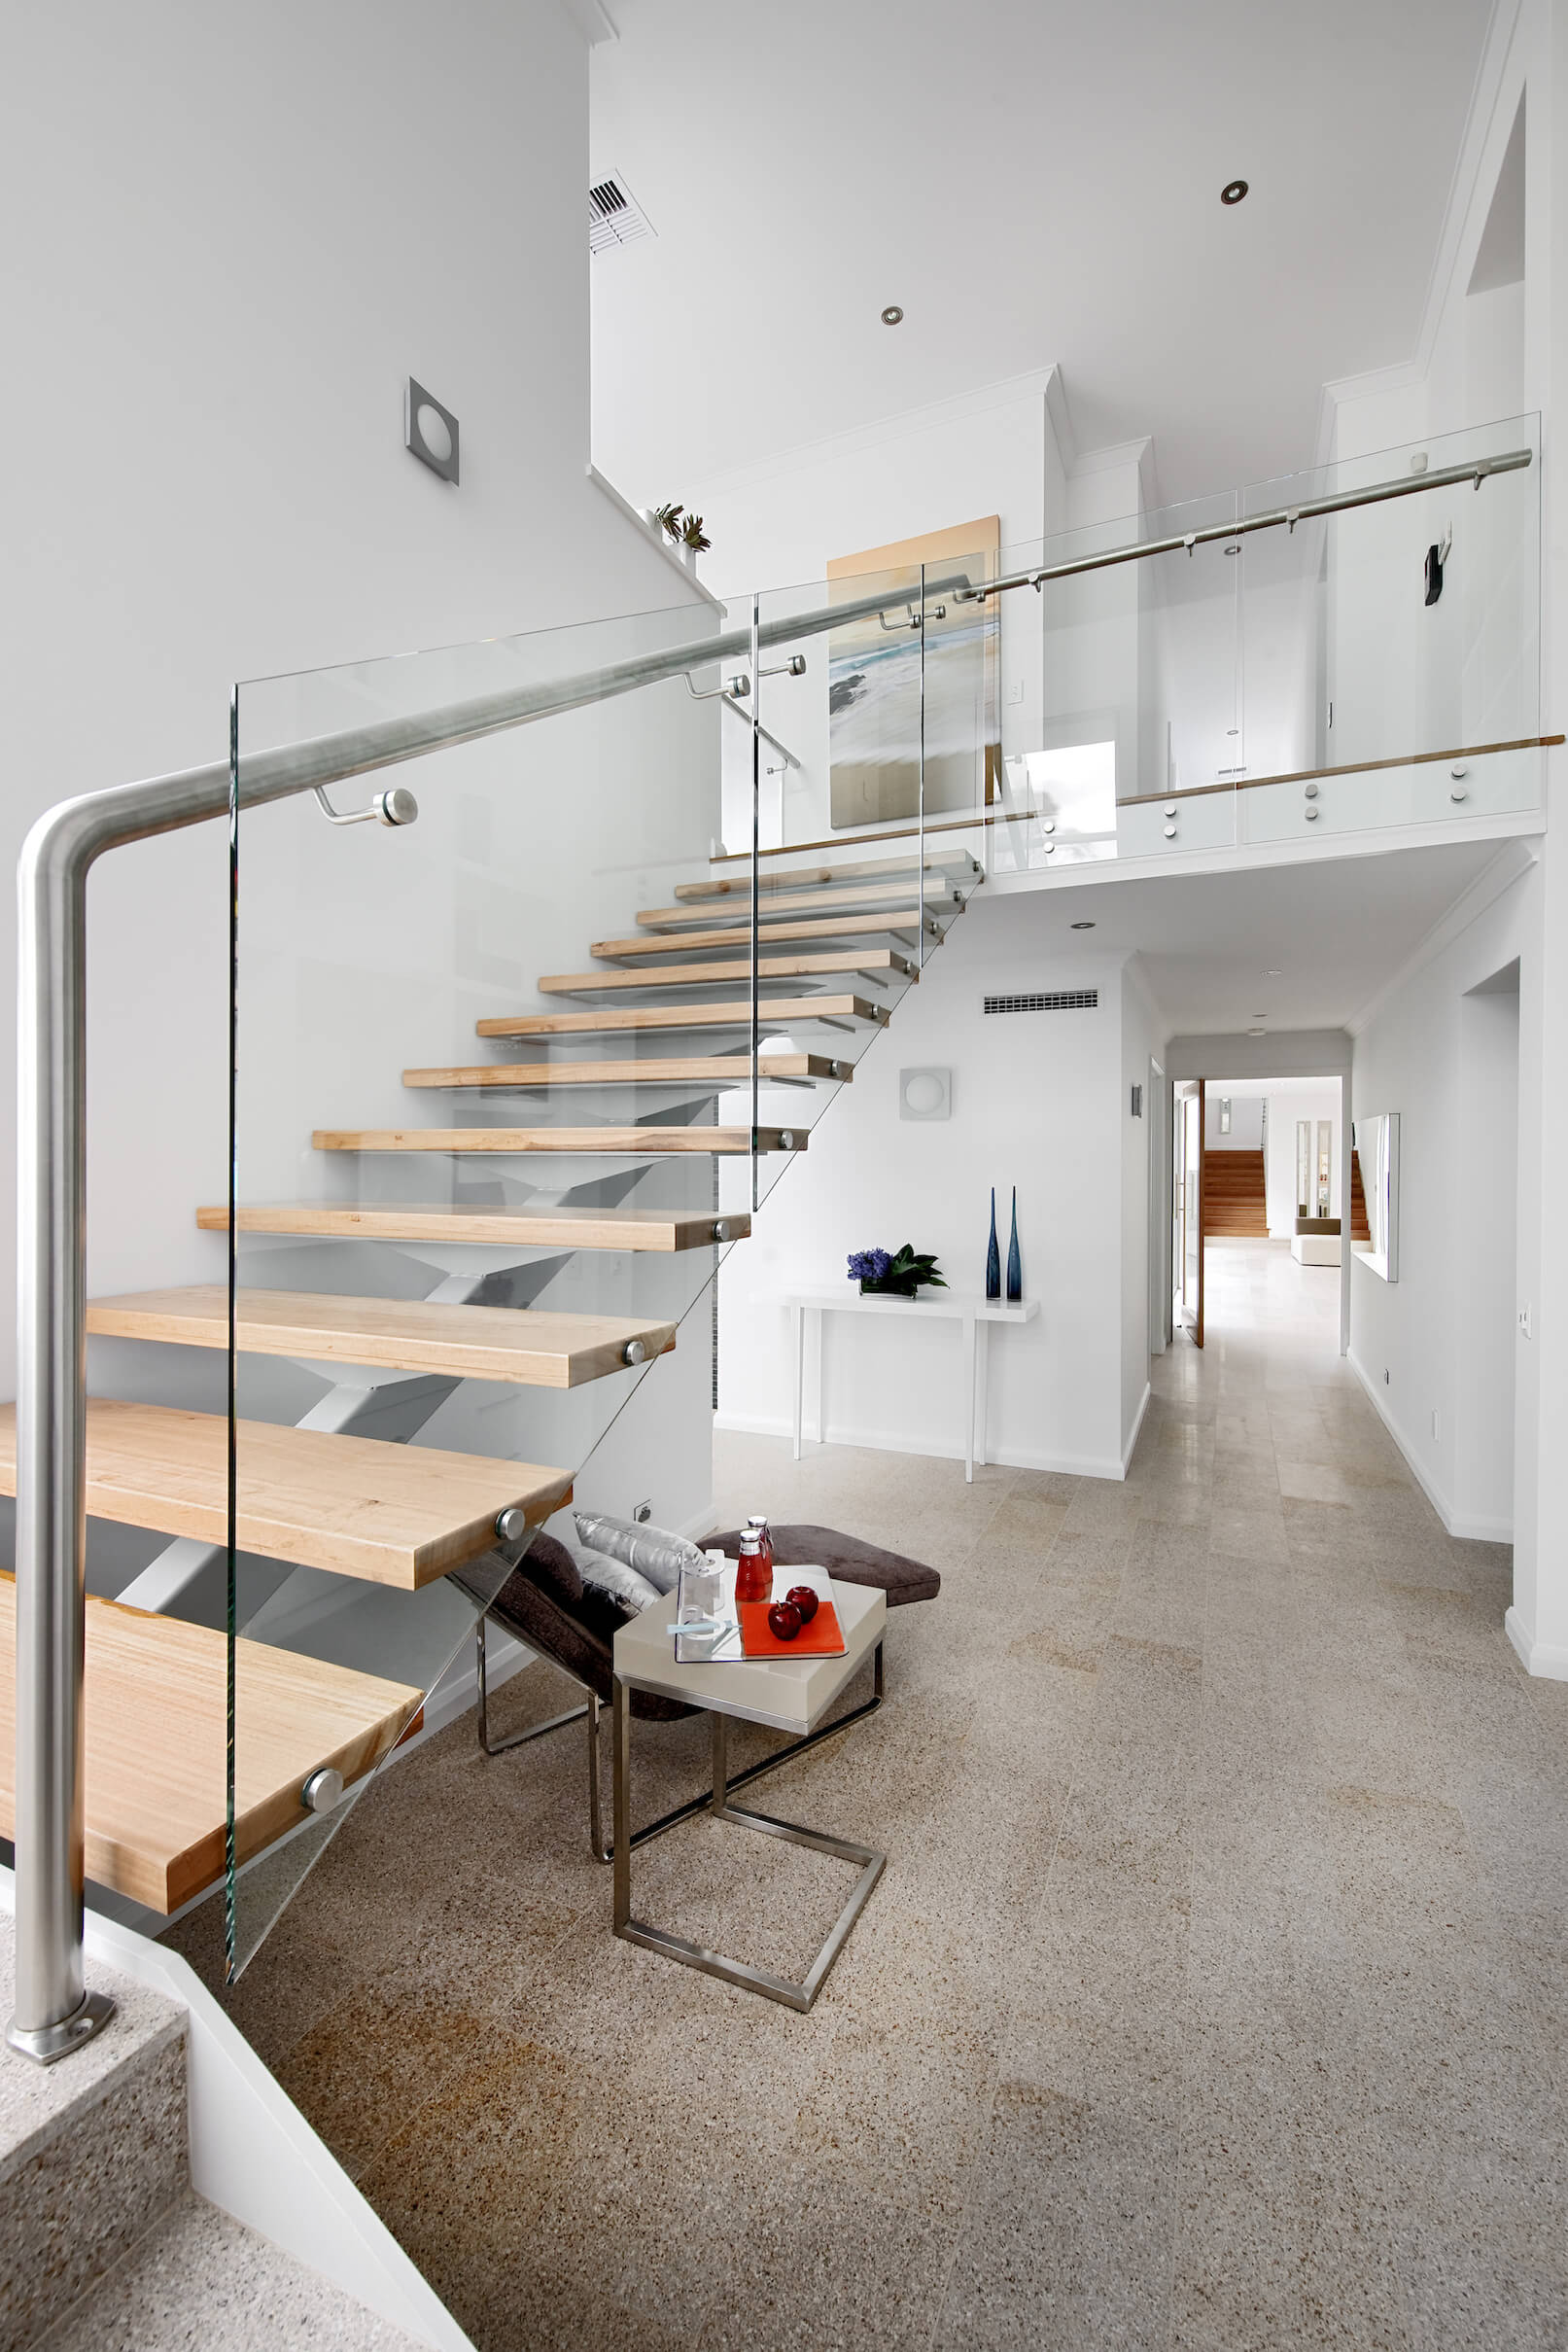 Here's a look at the main staircase in steel and timber, defining the front segment of the home. Glass railings aid in the transparent view to the surrounding spaces.